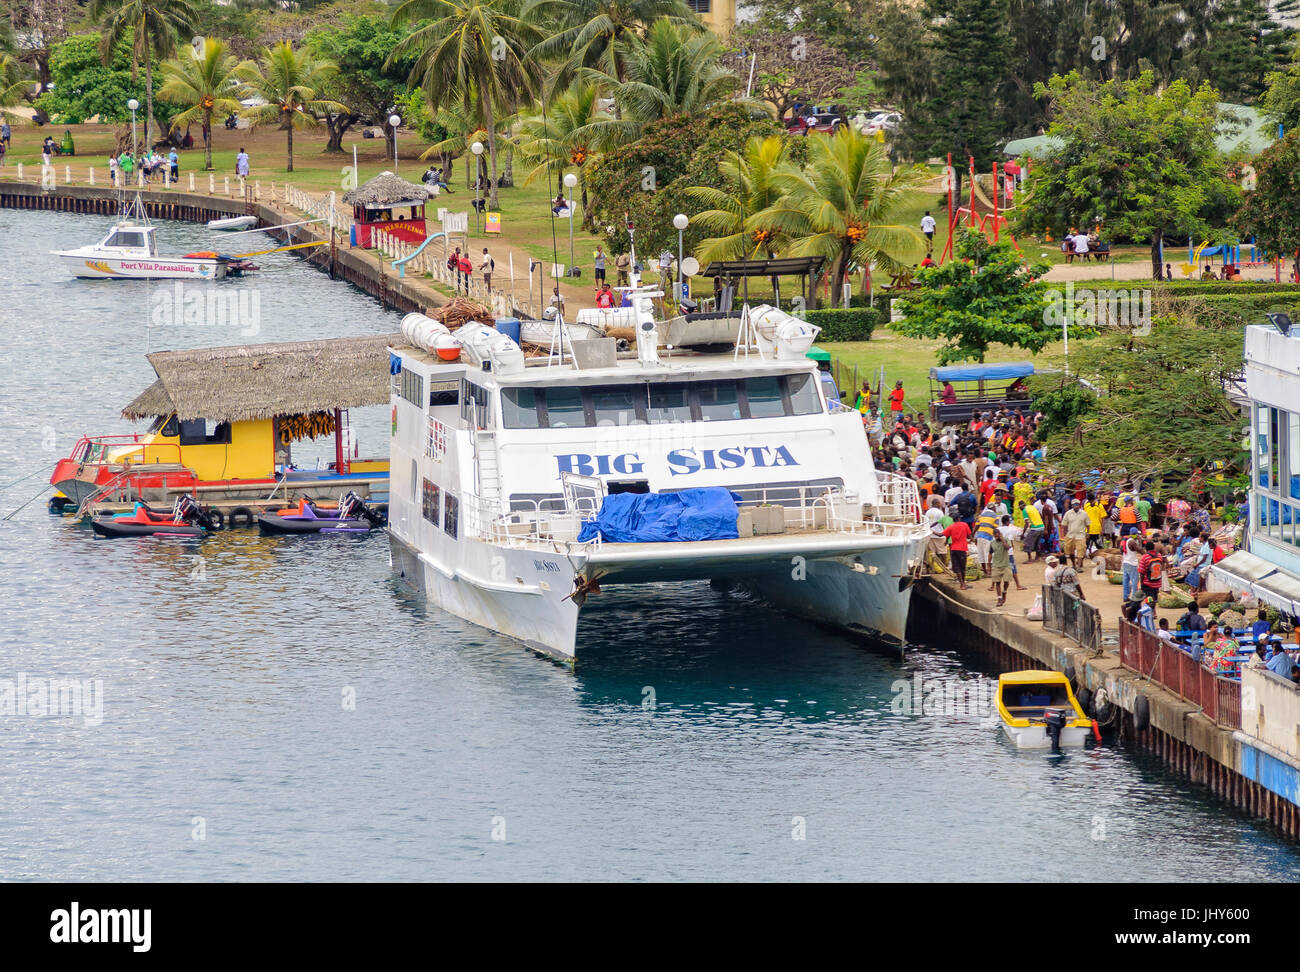 Big Sista, a 33m  passenger vessel, has arrived on its weekly run from Luganville Santo to the harbour in front - Stock Image